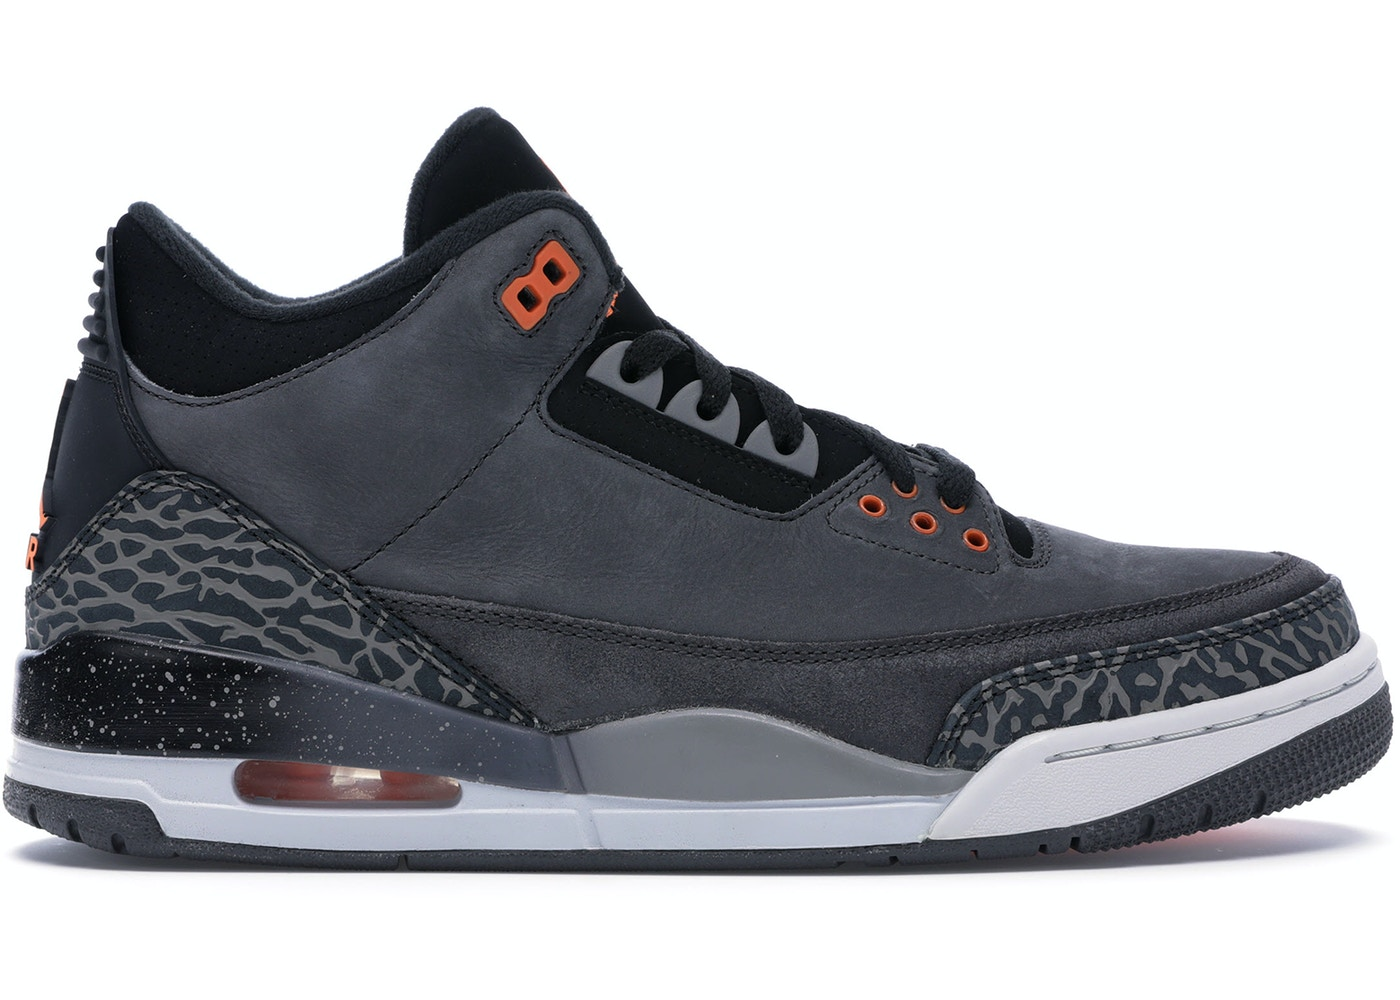 reputable site 08e81 336ff Buy Air Jordan 3 Size 17 Shoes & Deadstock Sneakers